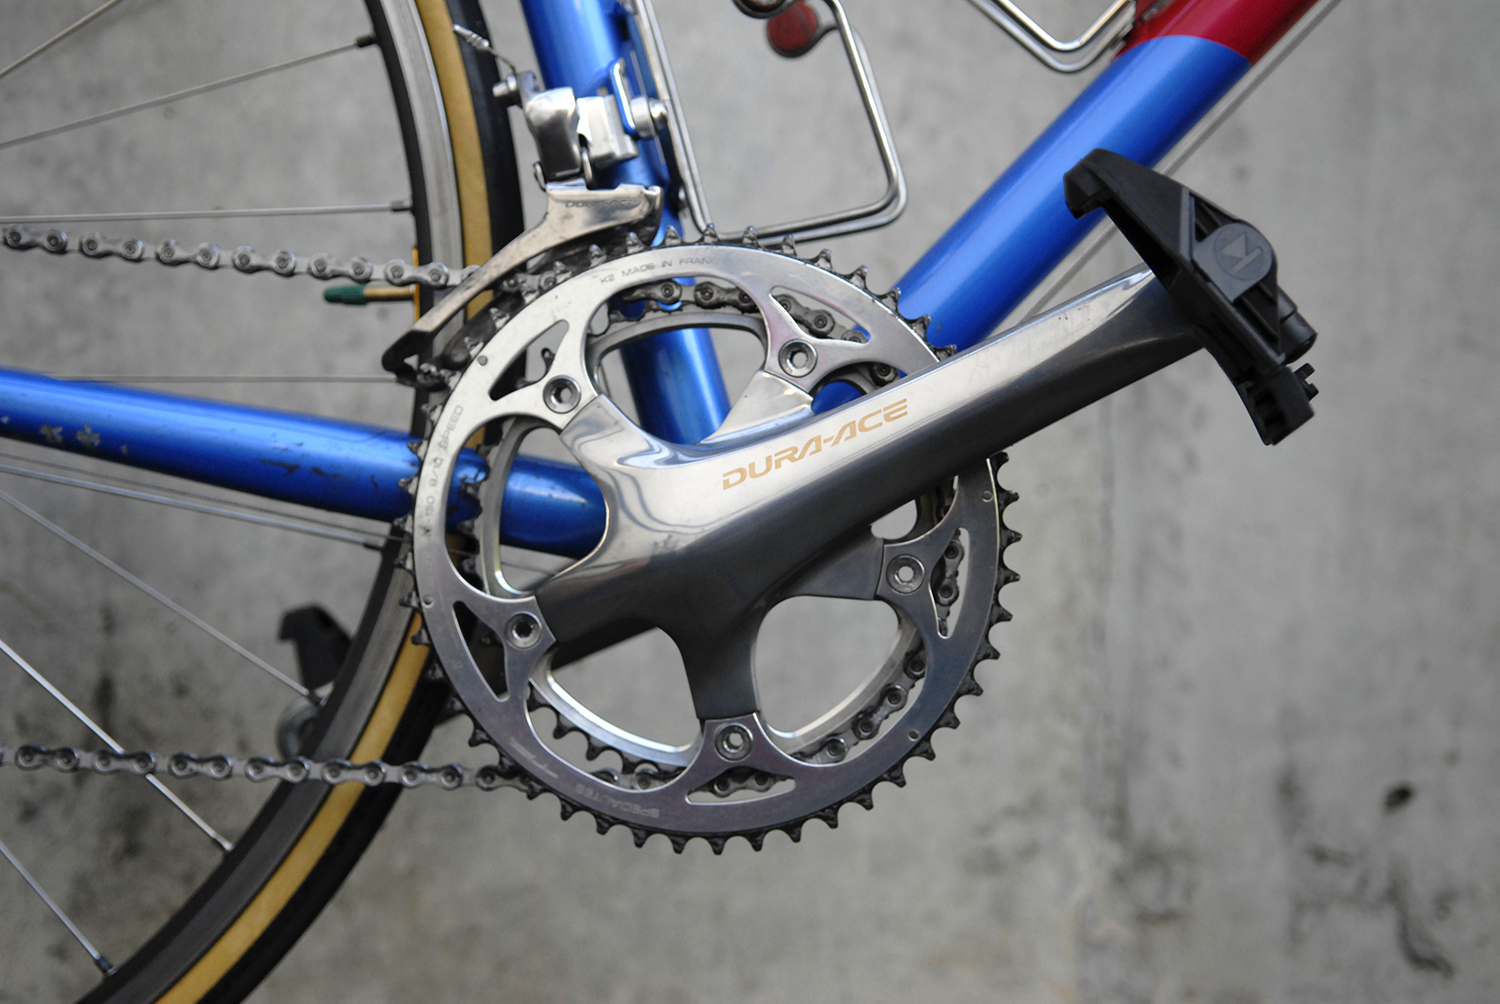 Dura Ace 7800 Shimano crankset with Keywin pedals